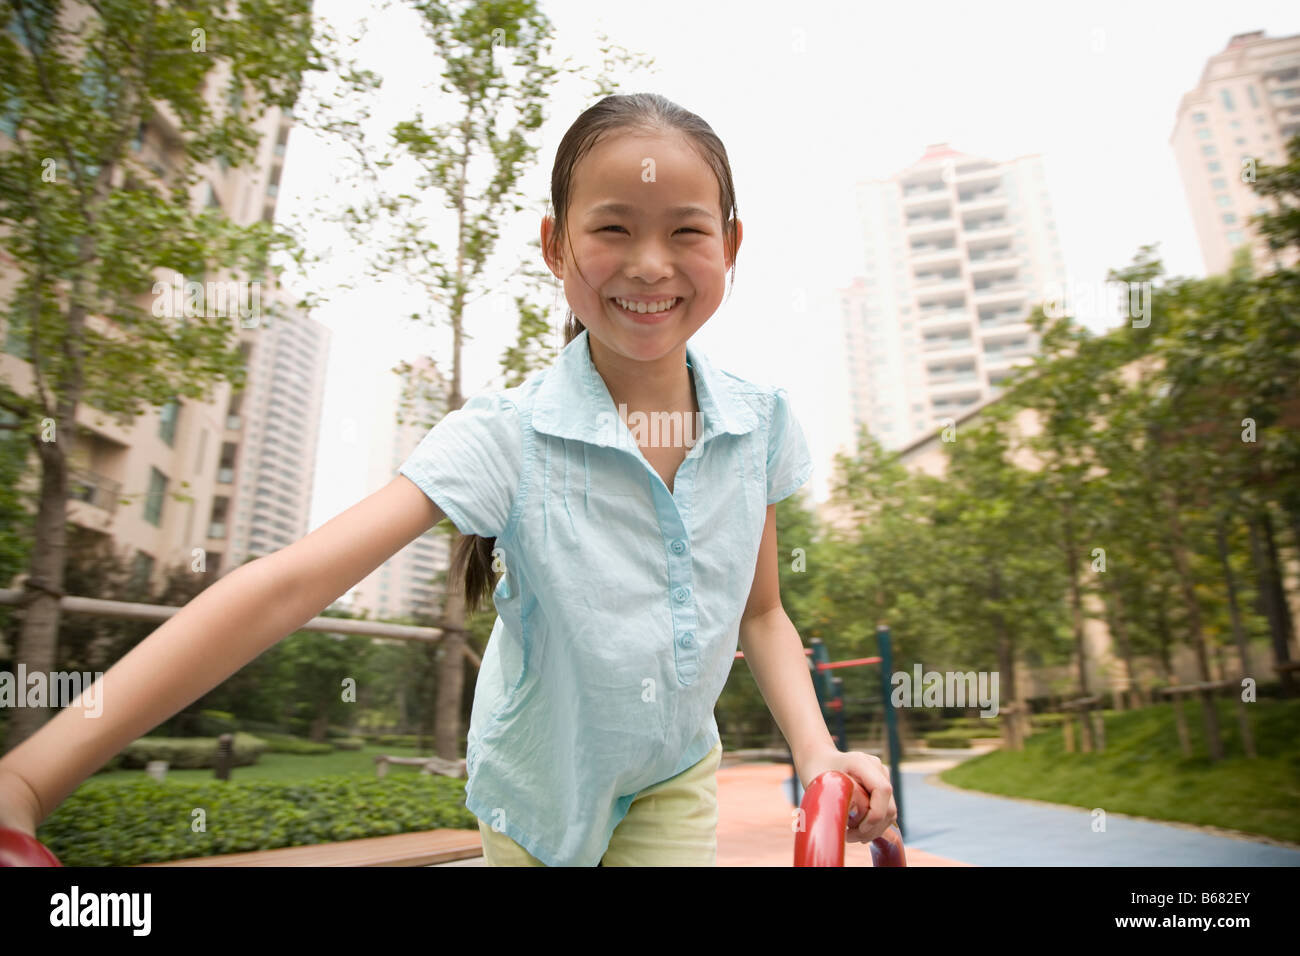 Portrait of a girl playing on a merry-go-round and smiling - Stock Image